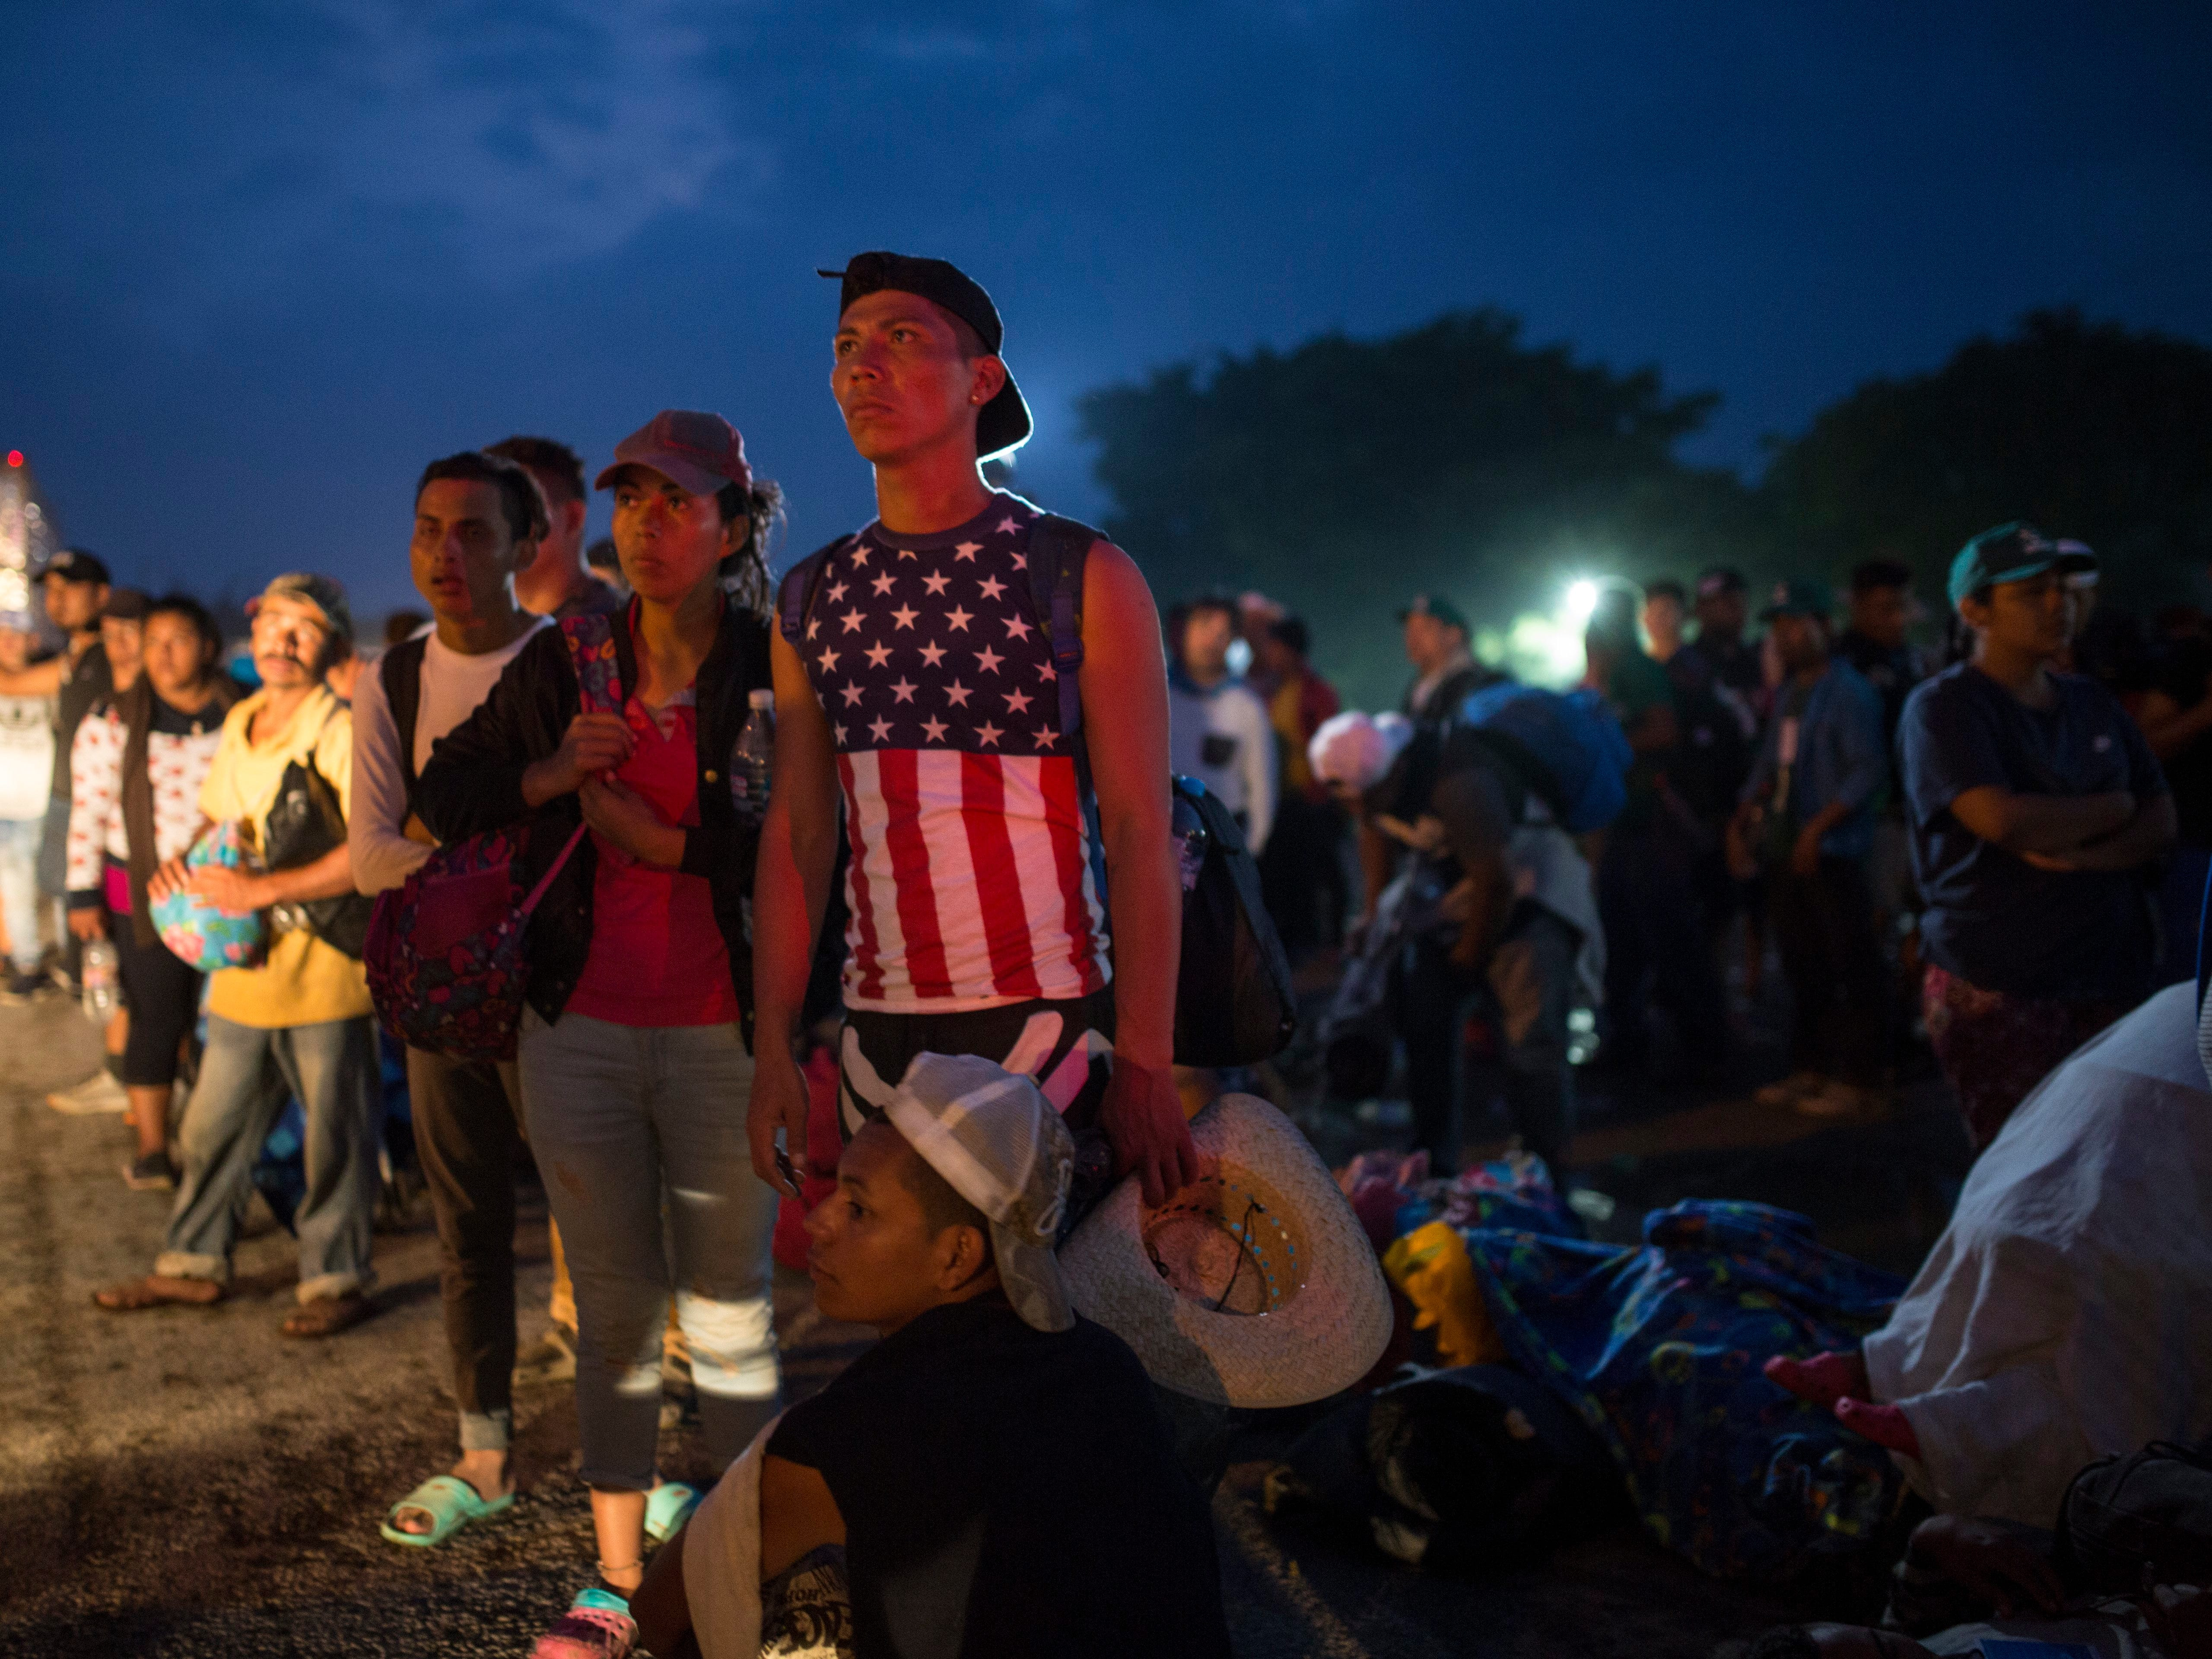 Central American migrants, part of the caravan hoping to reach the U.S. border, wait for a ride in Donaji, Oaxaca state, Mexico, Friday, Nov. 2, 2018.